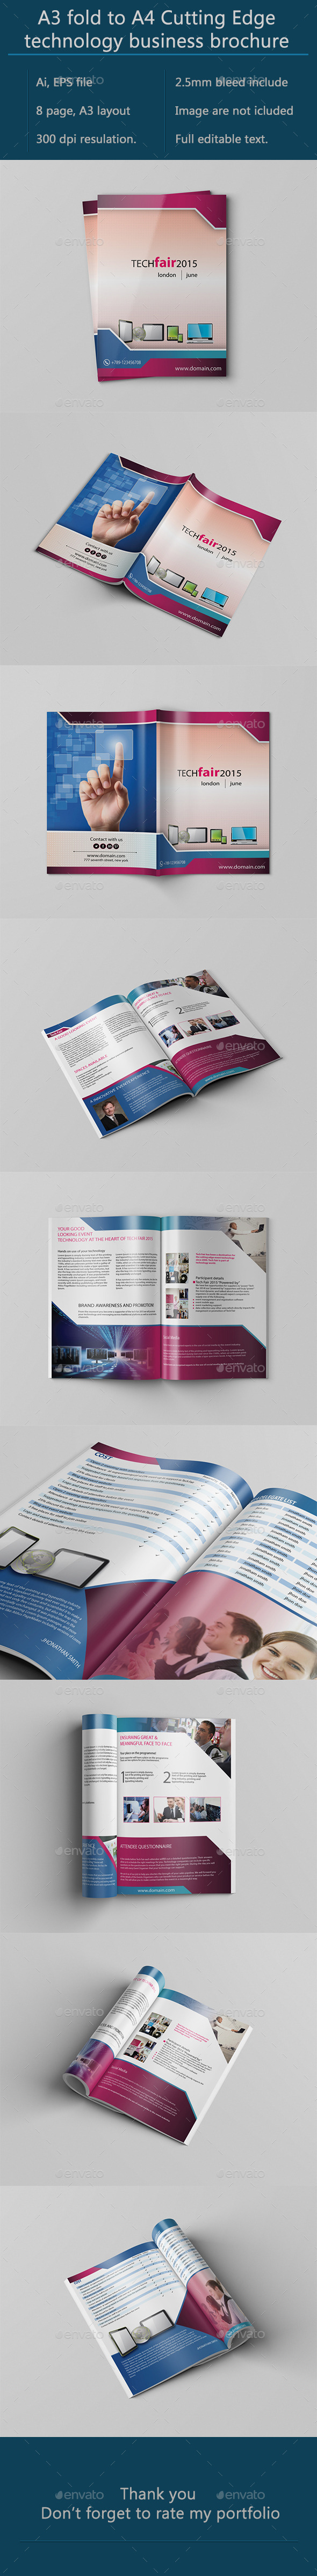 GraphicRiver A3 Bifold Technology Brochure 10066321